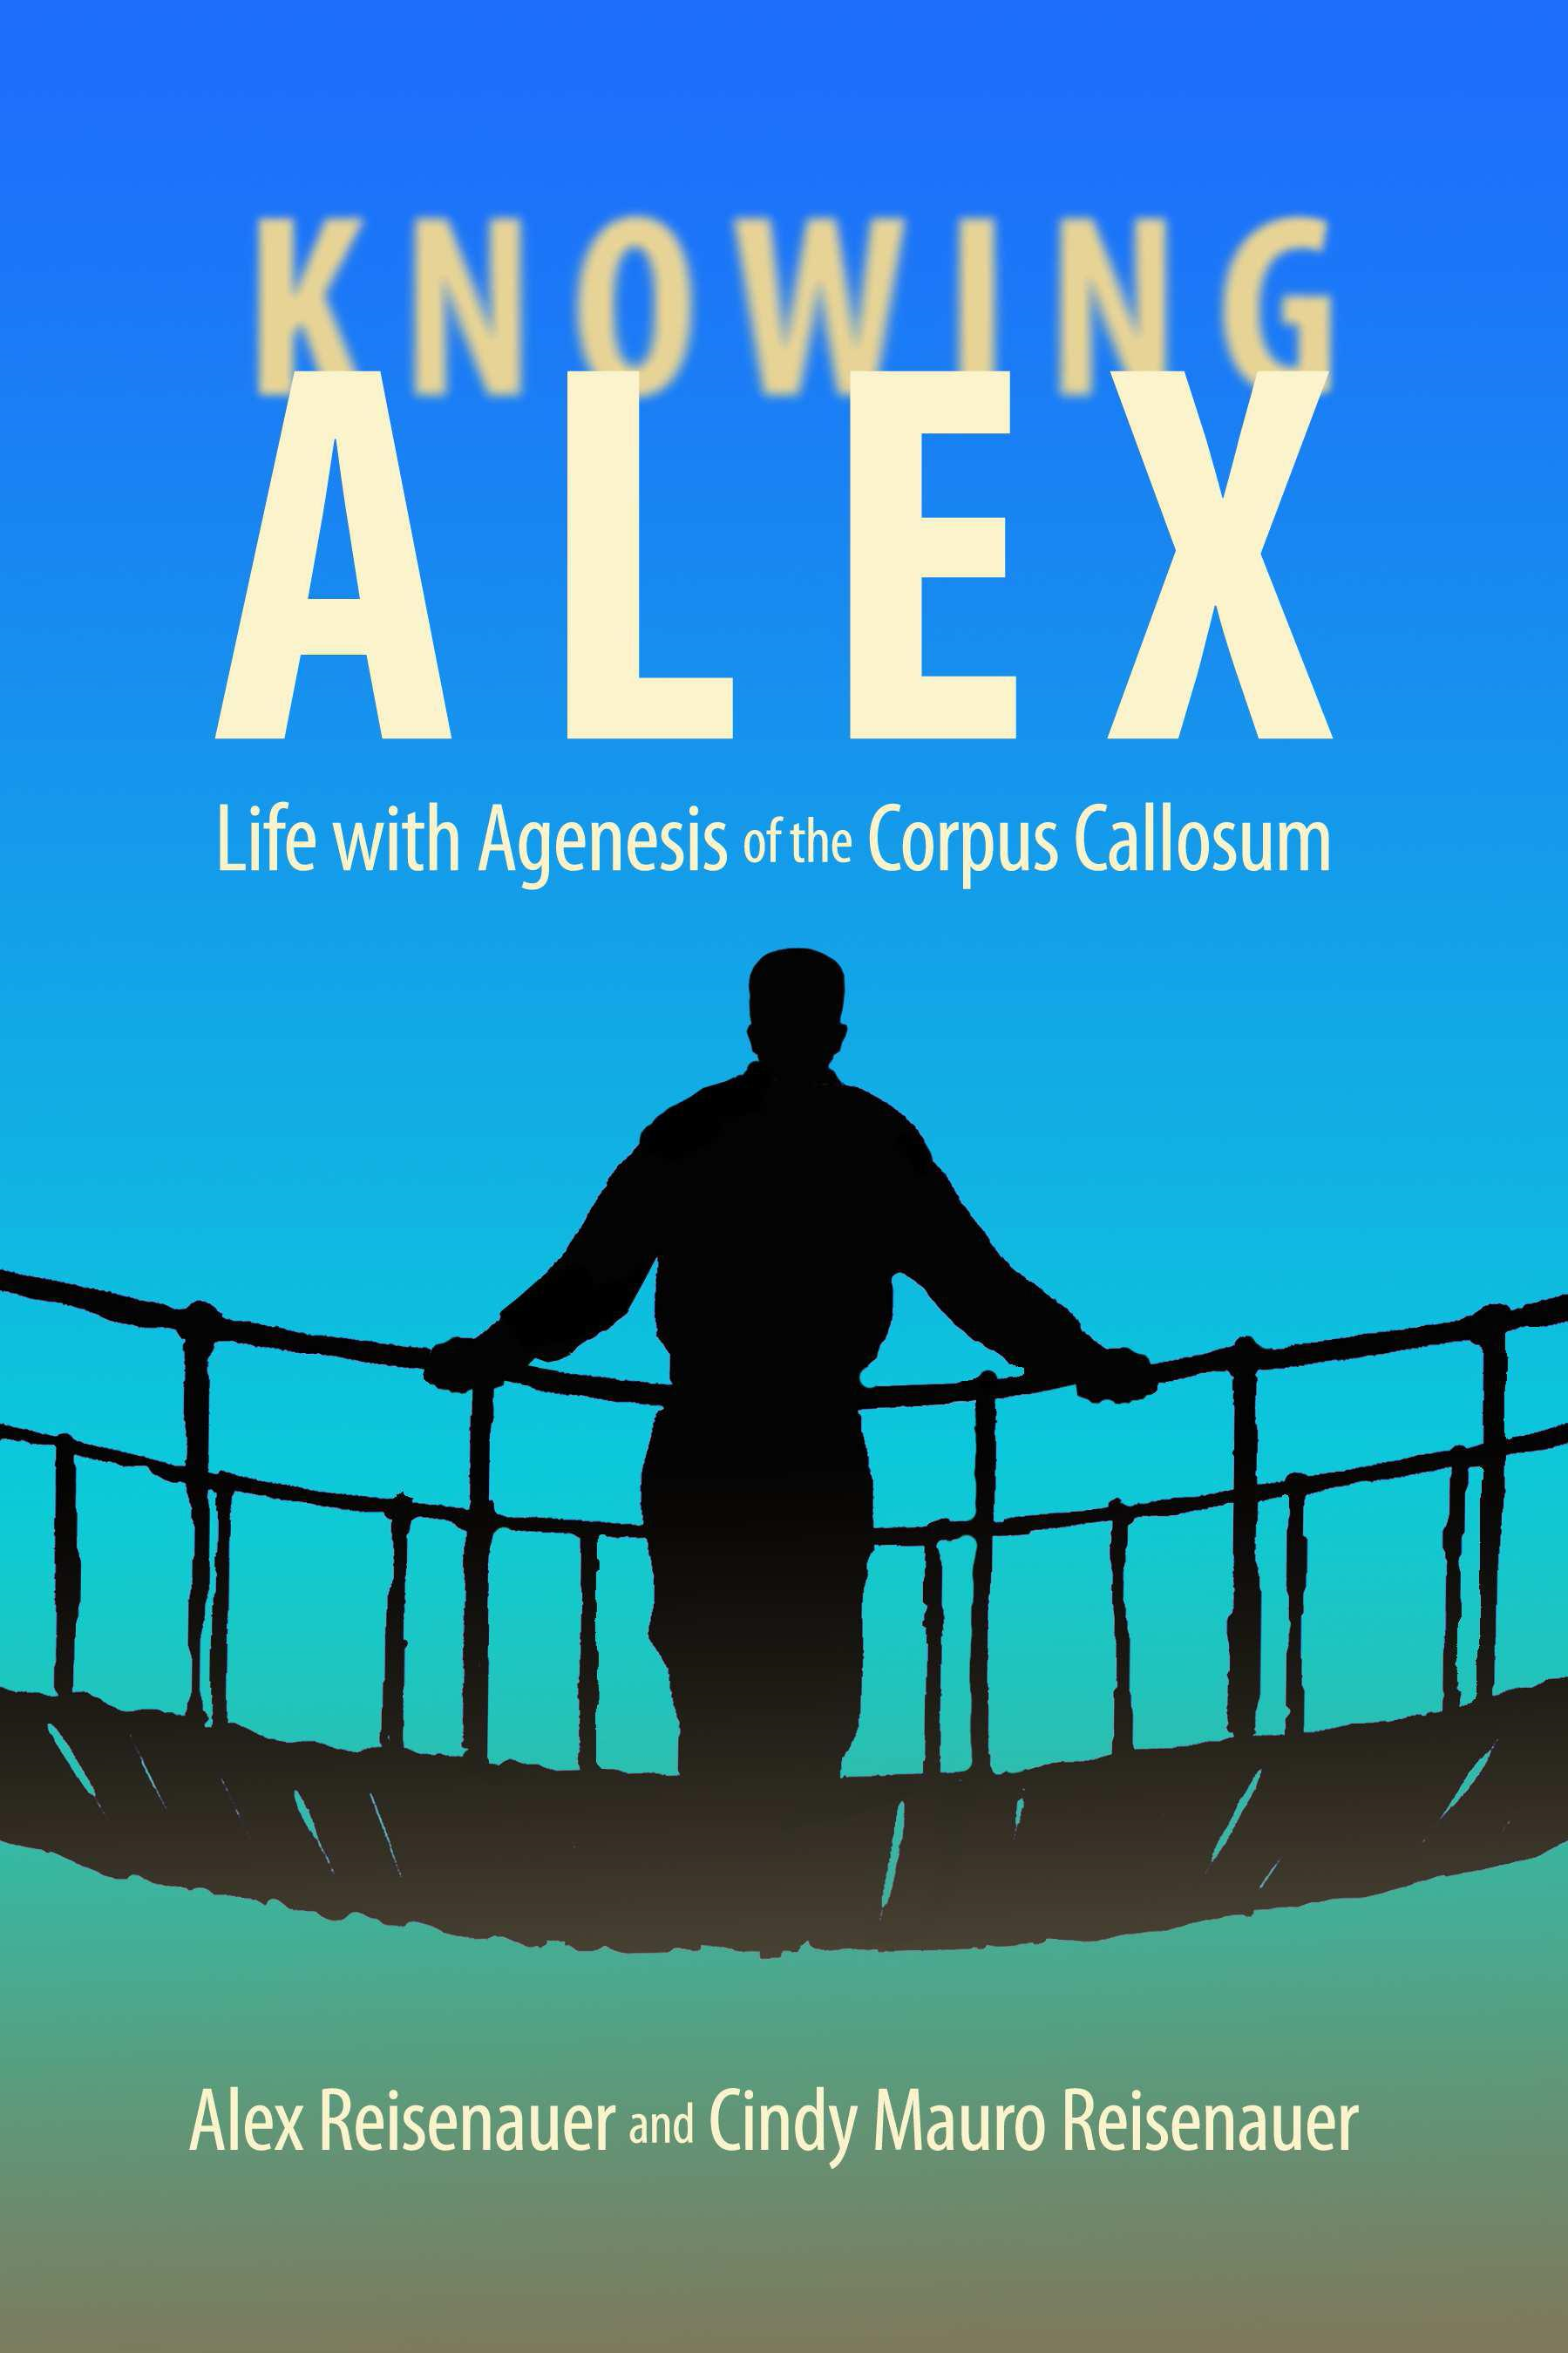 Knowing Alex: Life with Agenesis of the Corpus Callosum